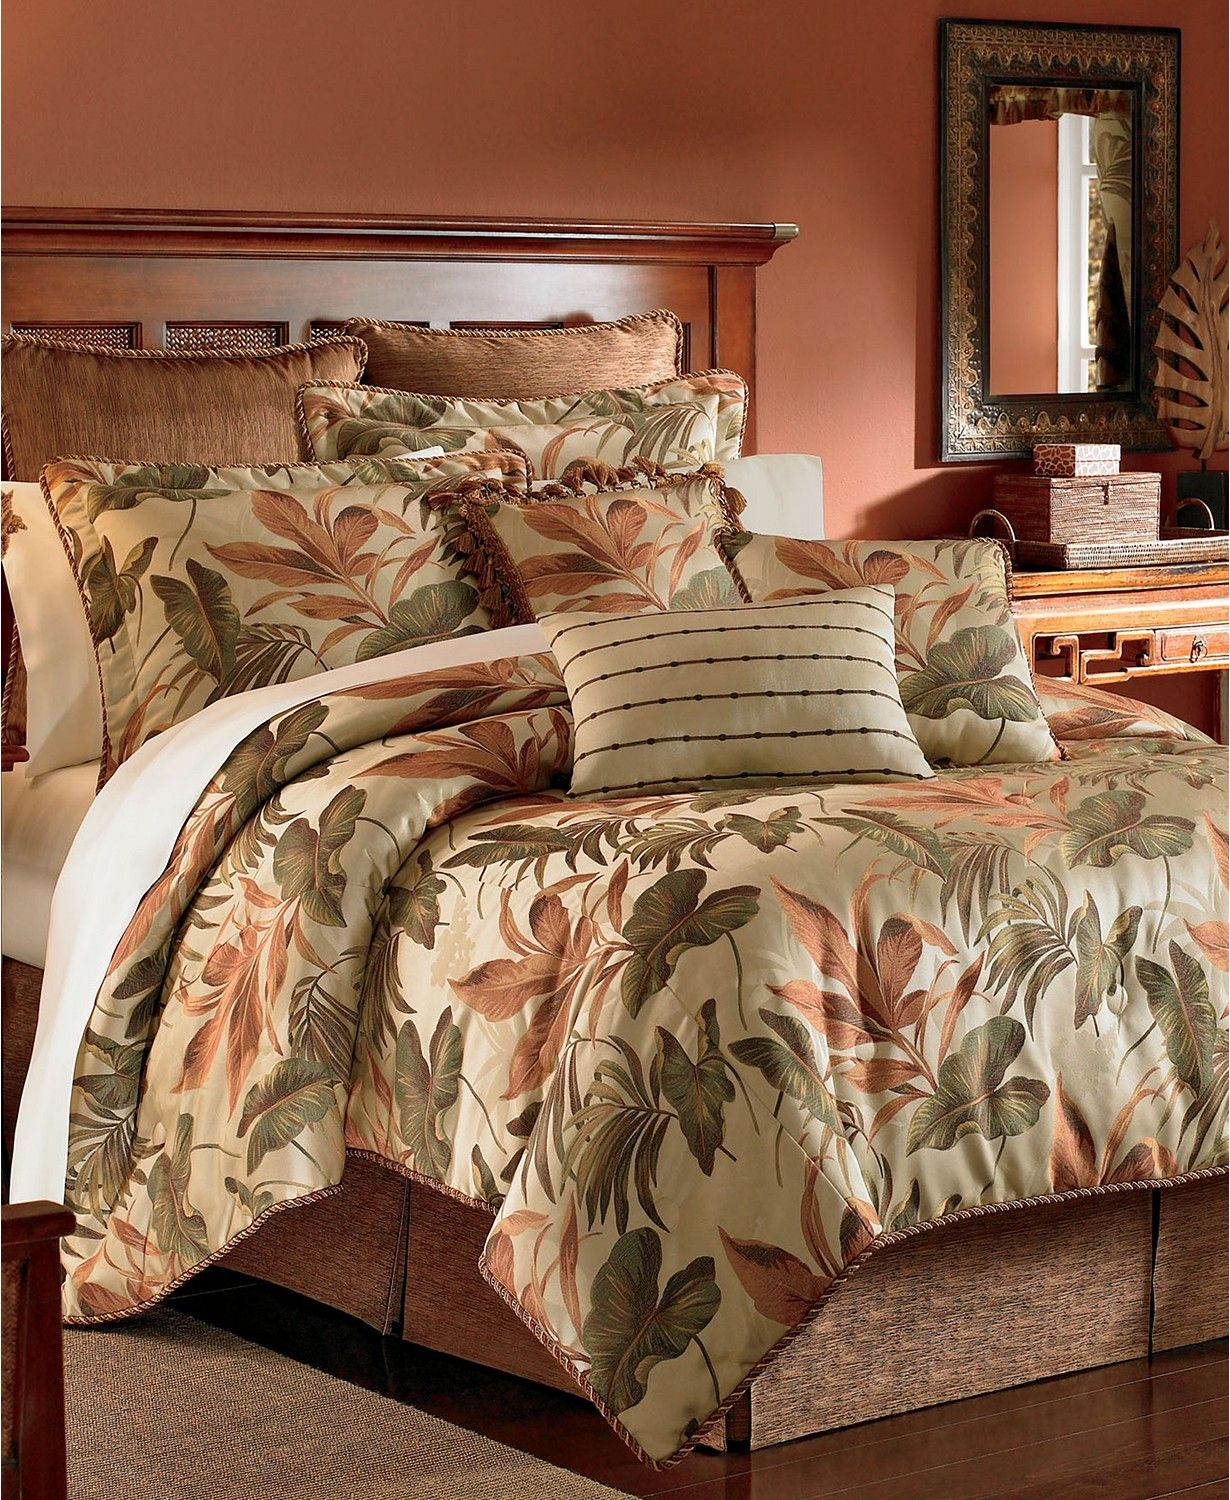 Croscill Bali Queen 4 Pc Comforter Set Bedding Collections Bed Bath Macy S